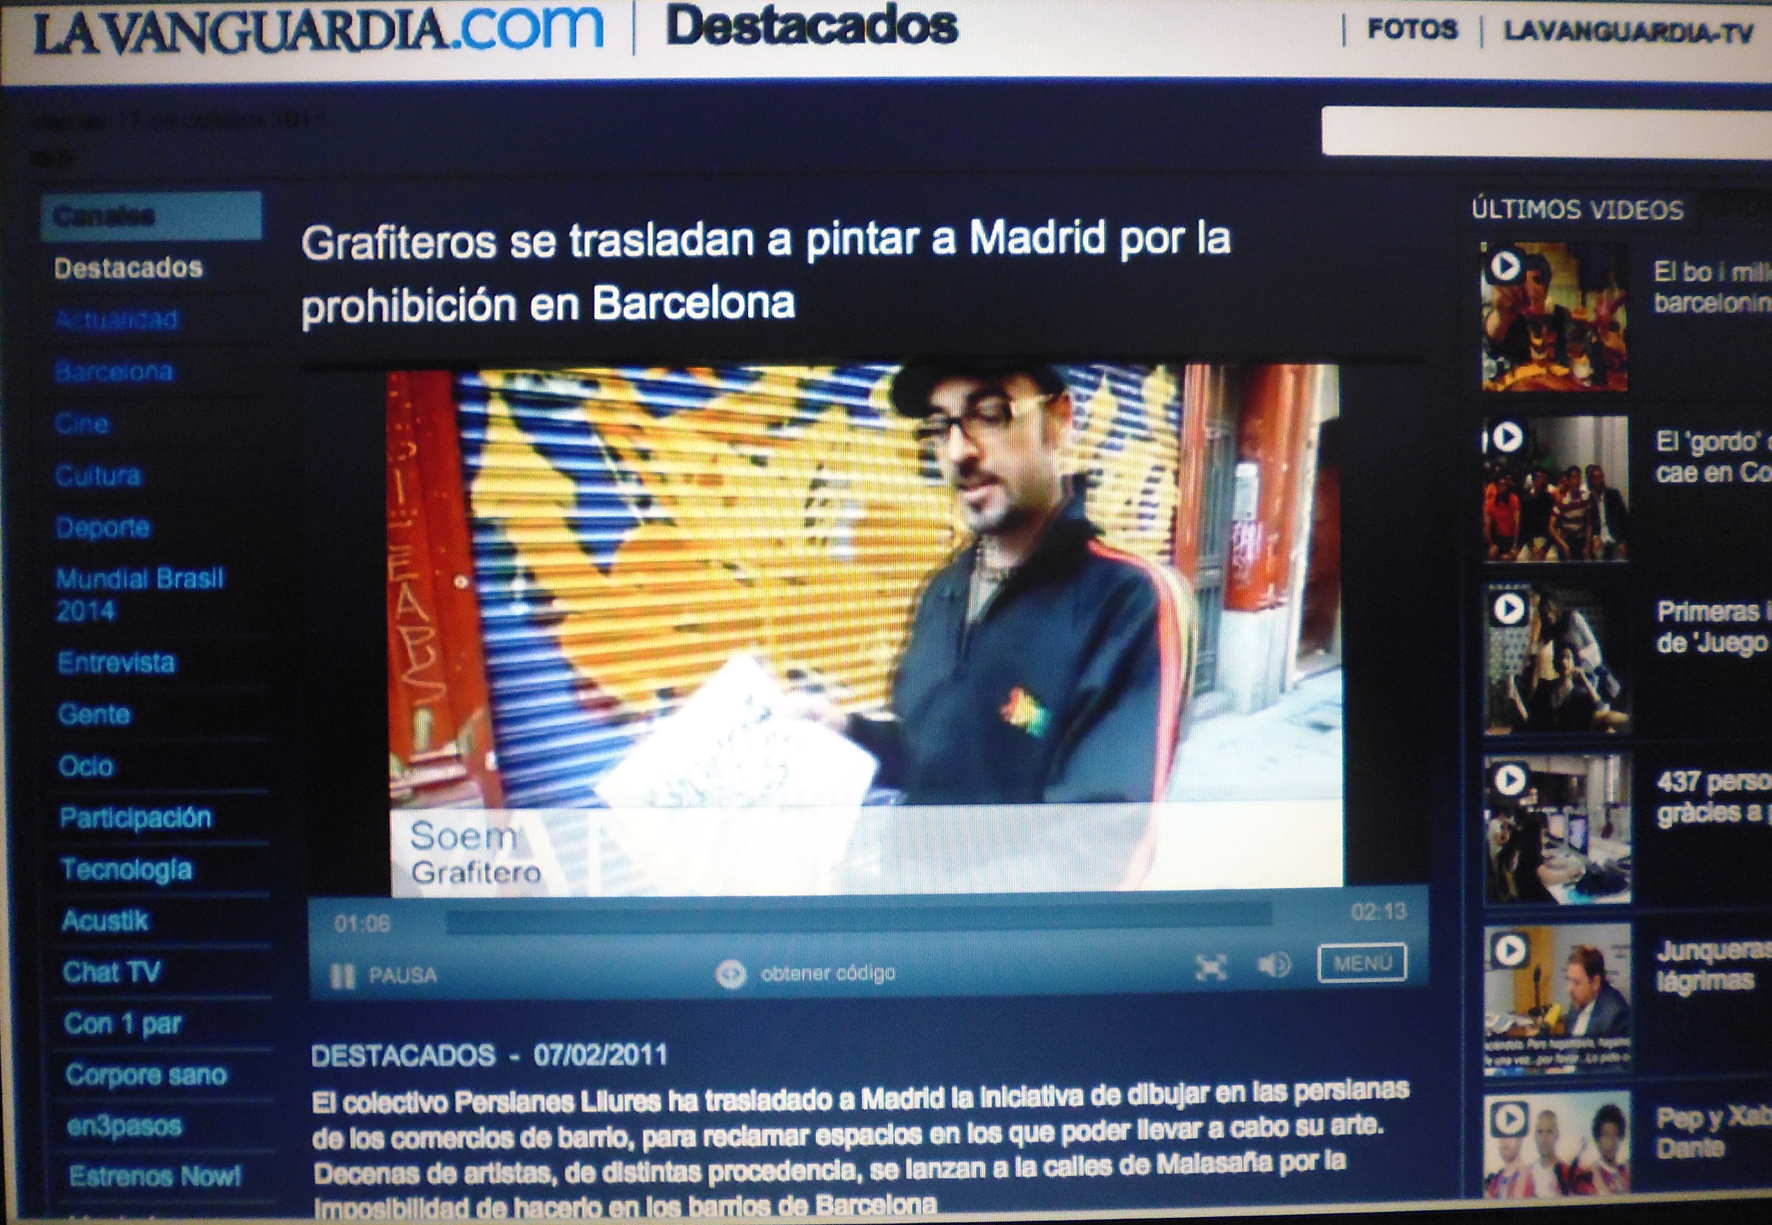 la vanguardia tv